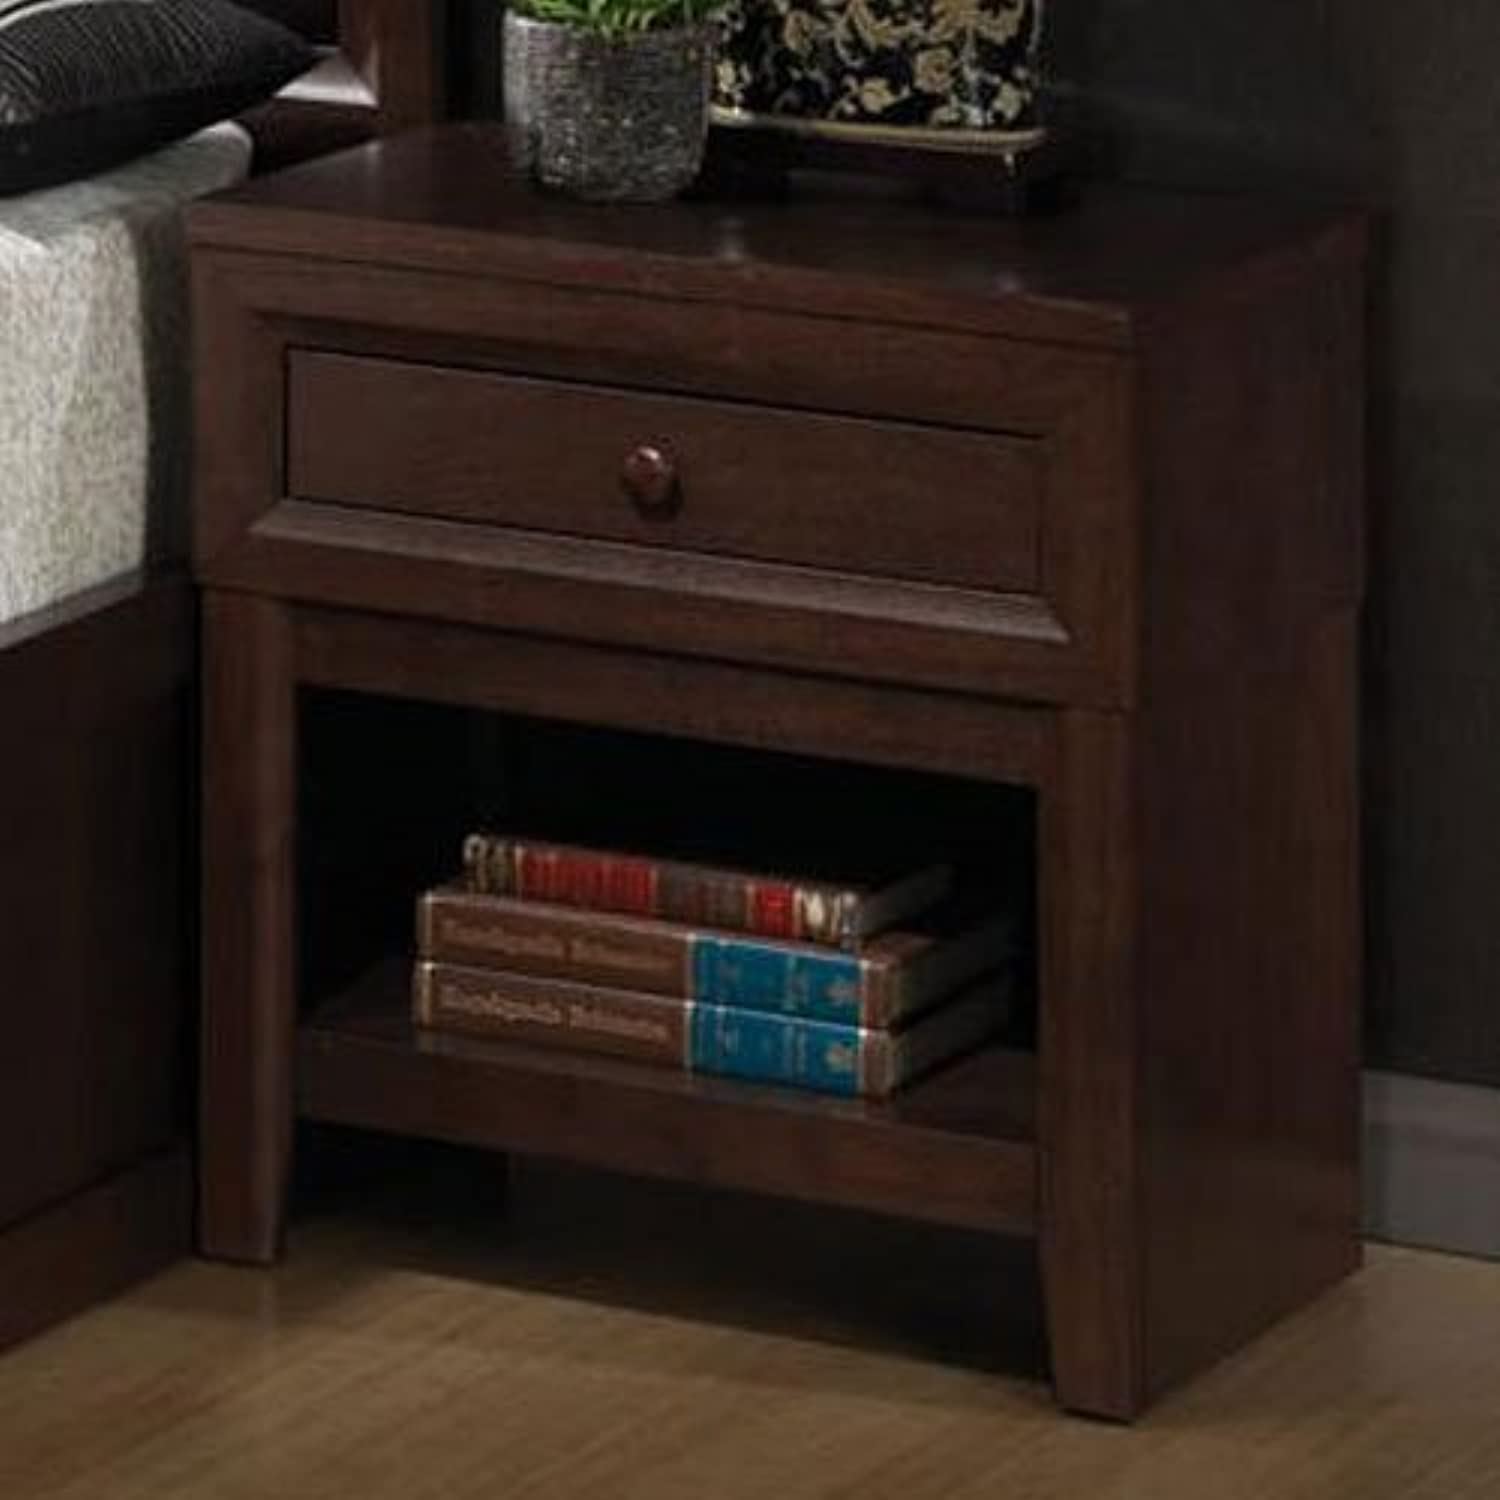 Coaster Home Furnishings 202312 Casual Contemporary Nightstand, Cherry